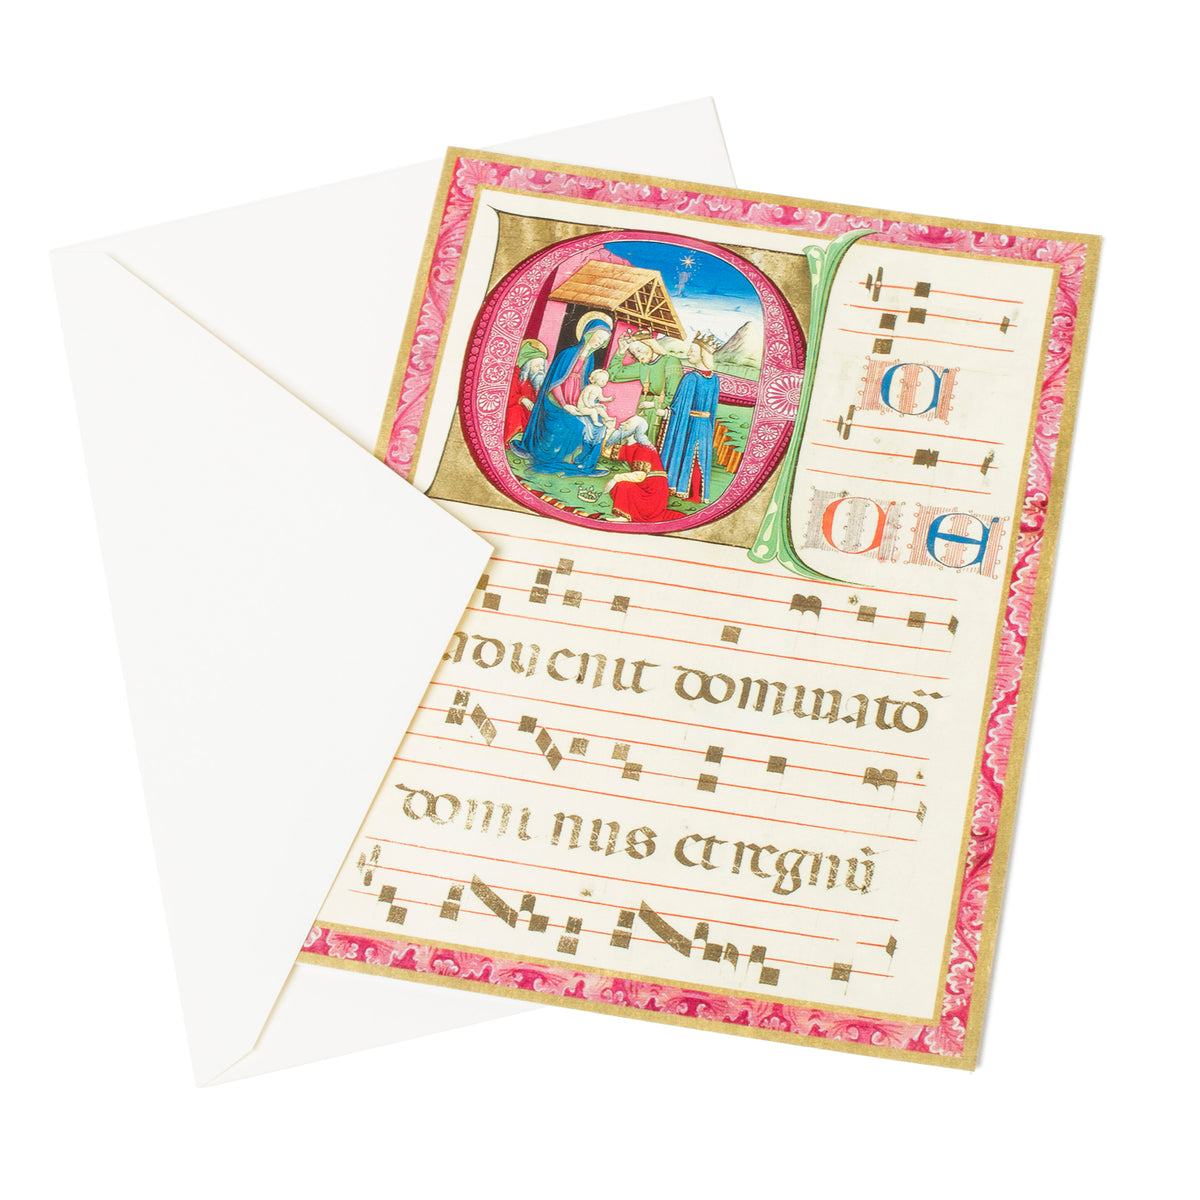 Getty Large Boxed Christmas Cards-The Adoration of the Magi-View of card with envelope | Getty Store